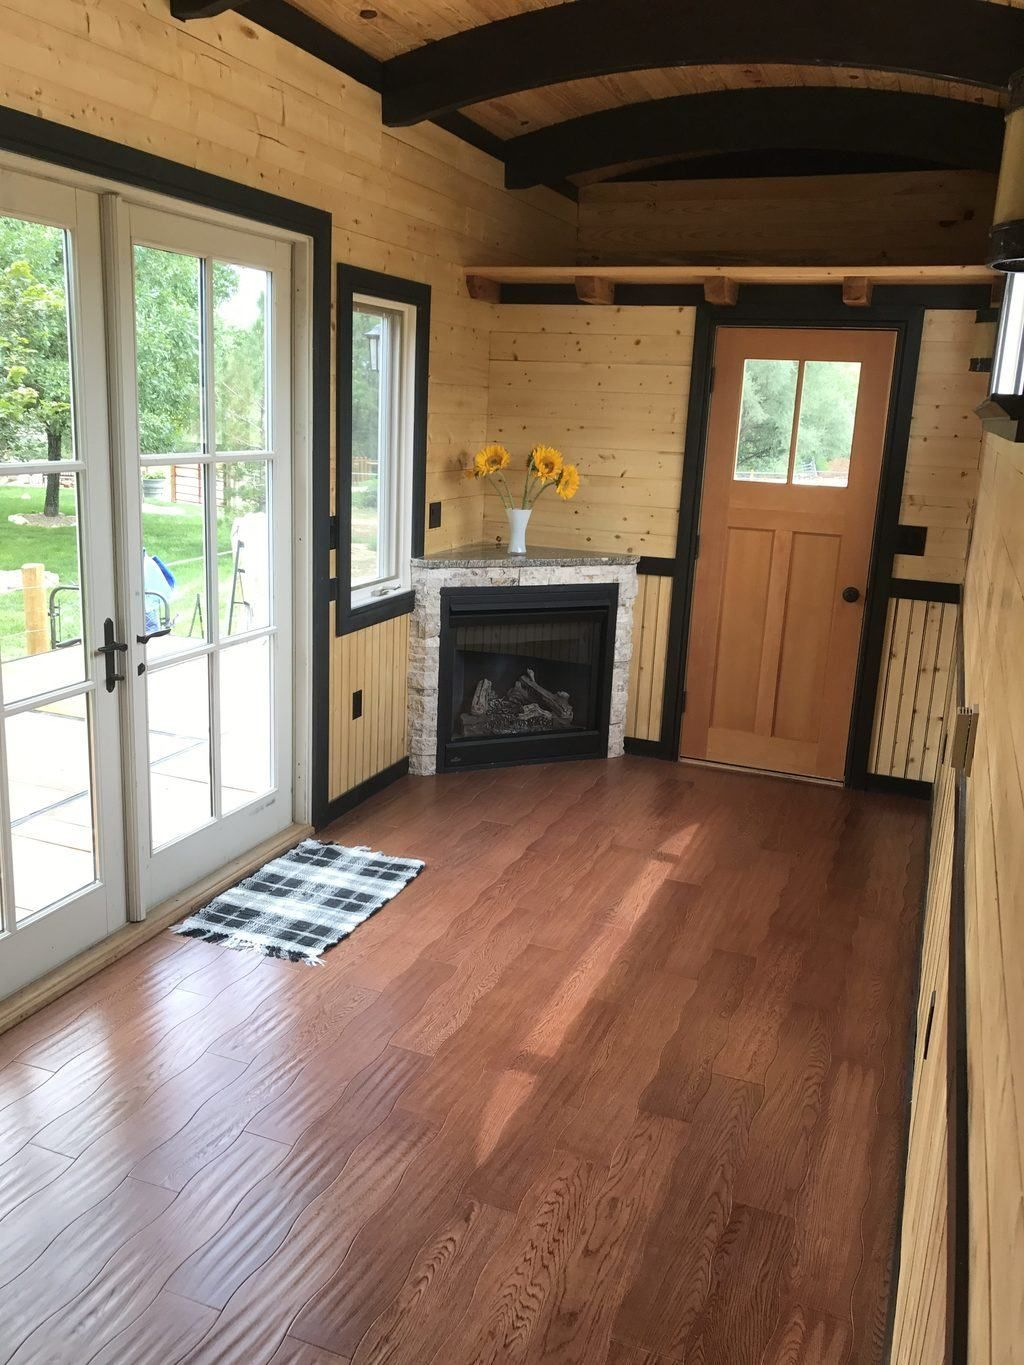 Over 400 square feet of of indoor living space with a 200 square foot fold down deck and 30 square foot back porch this house is packed with amenities